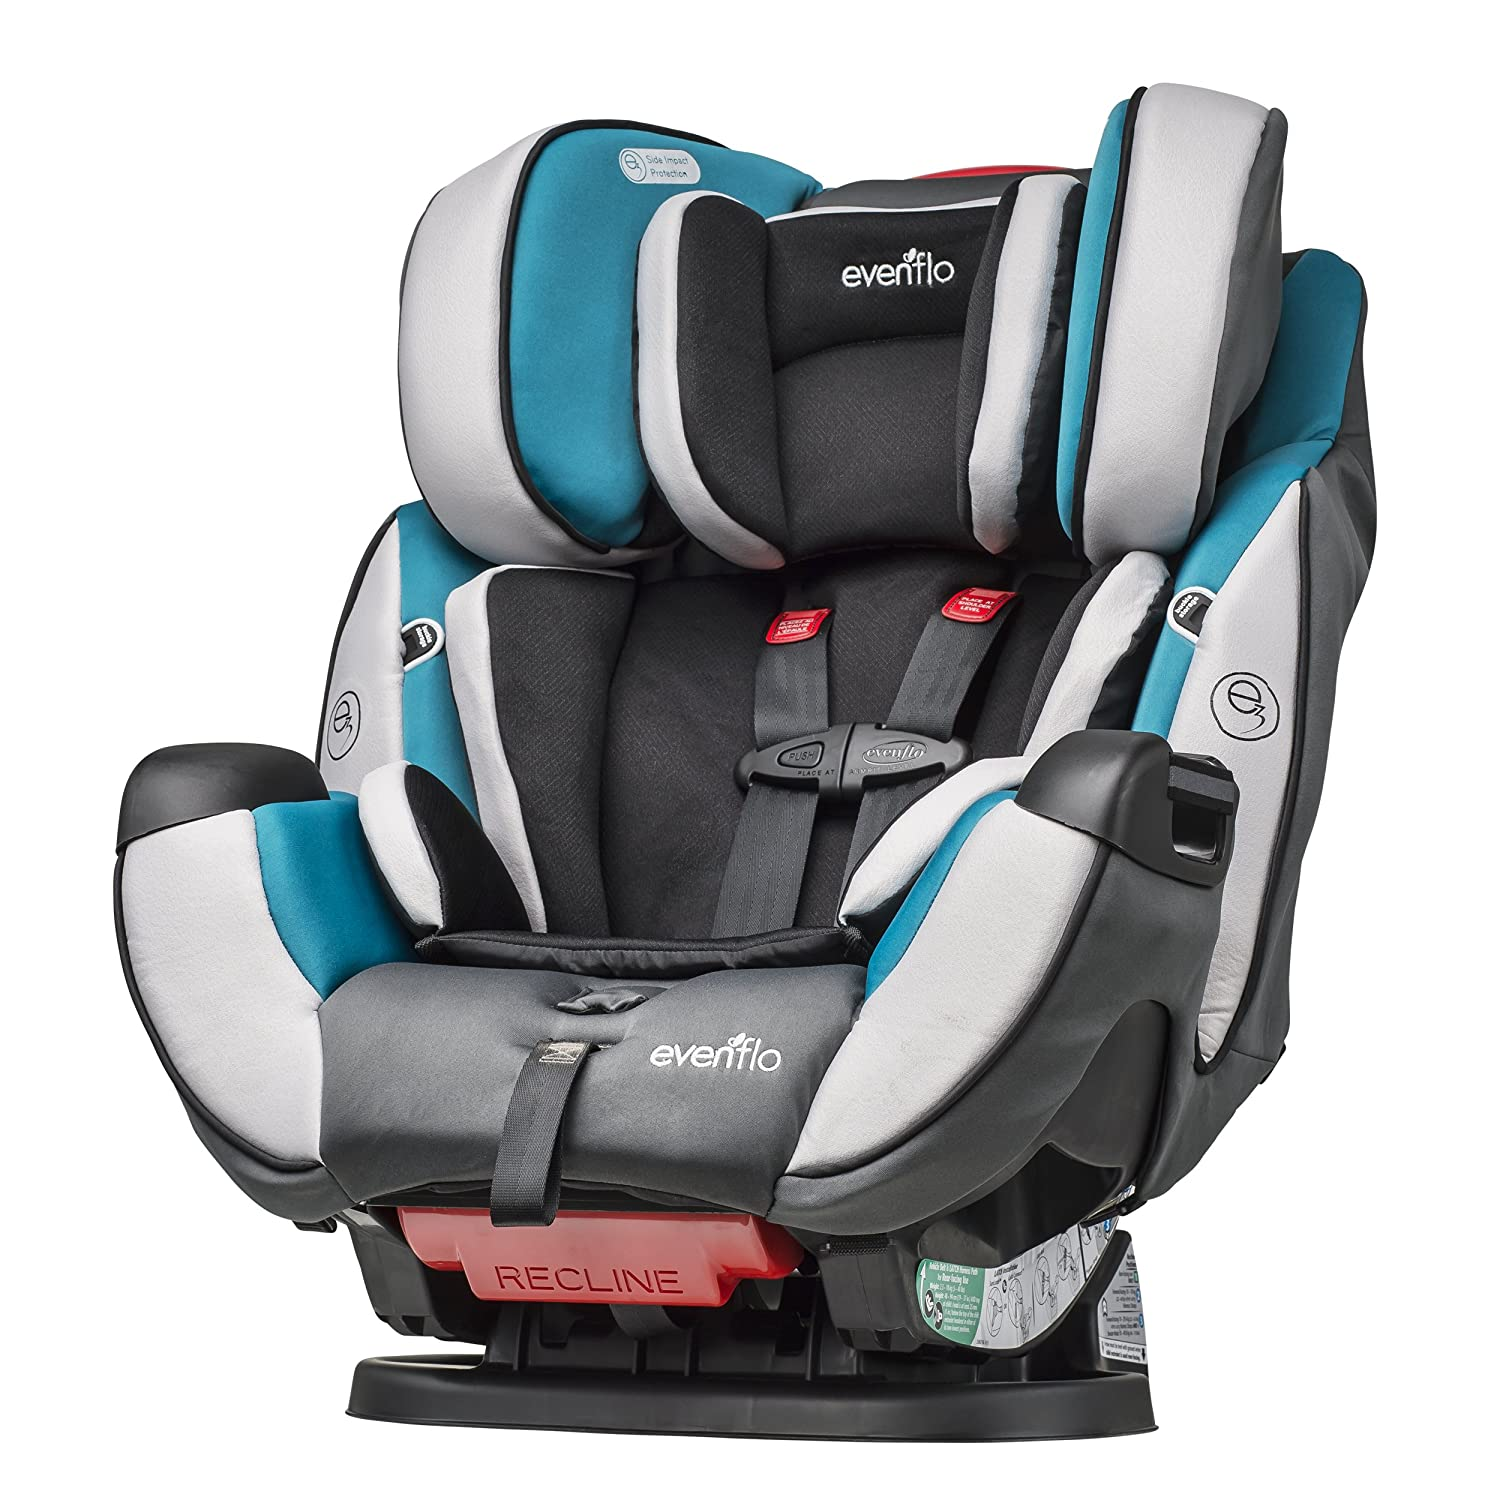 Amazon.com : Evenflo Symphony DLX All-In-One Convertible Car Seat ...